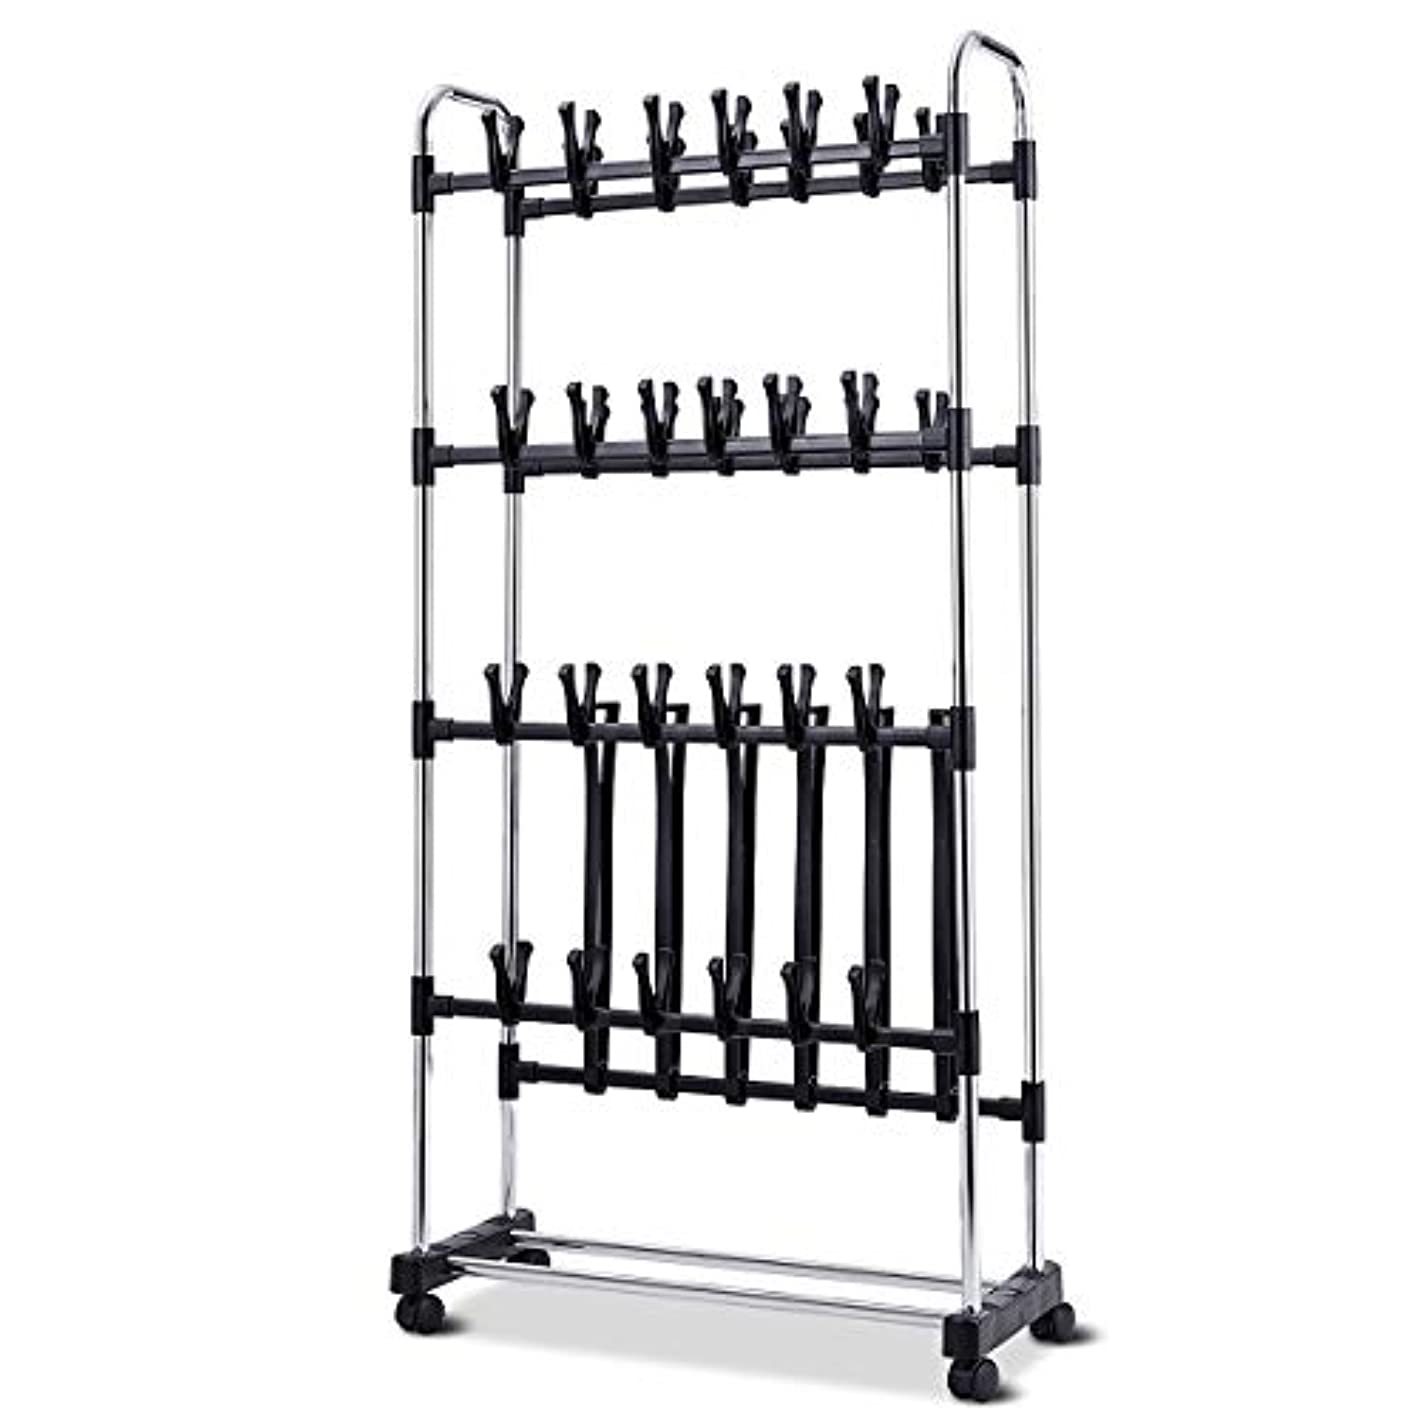 LordBee 36 Pairs Clip On Shoe Boot Rack Adjustable Storage Shelf Sturdy Large Space Organizer Furniture Chrome Steel Stable Durable